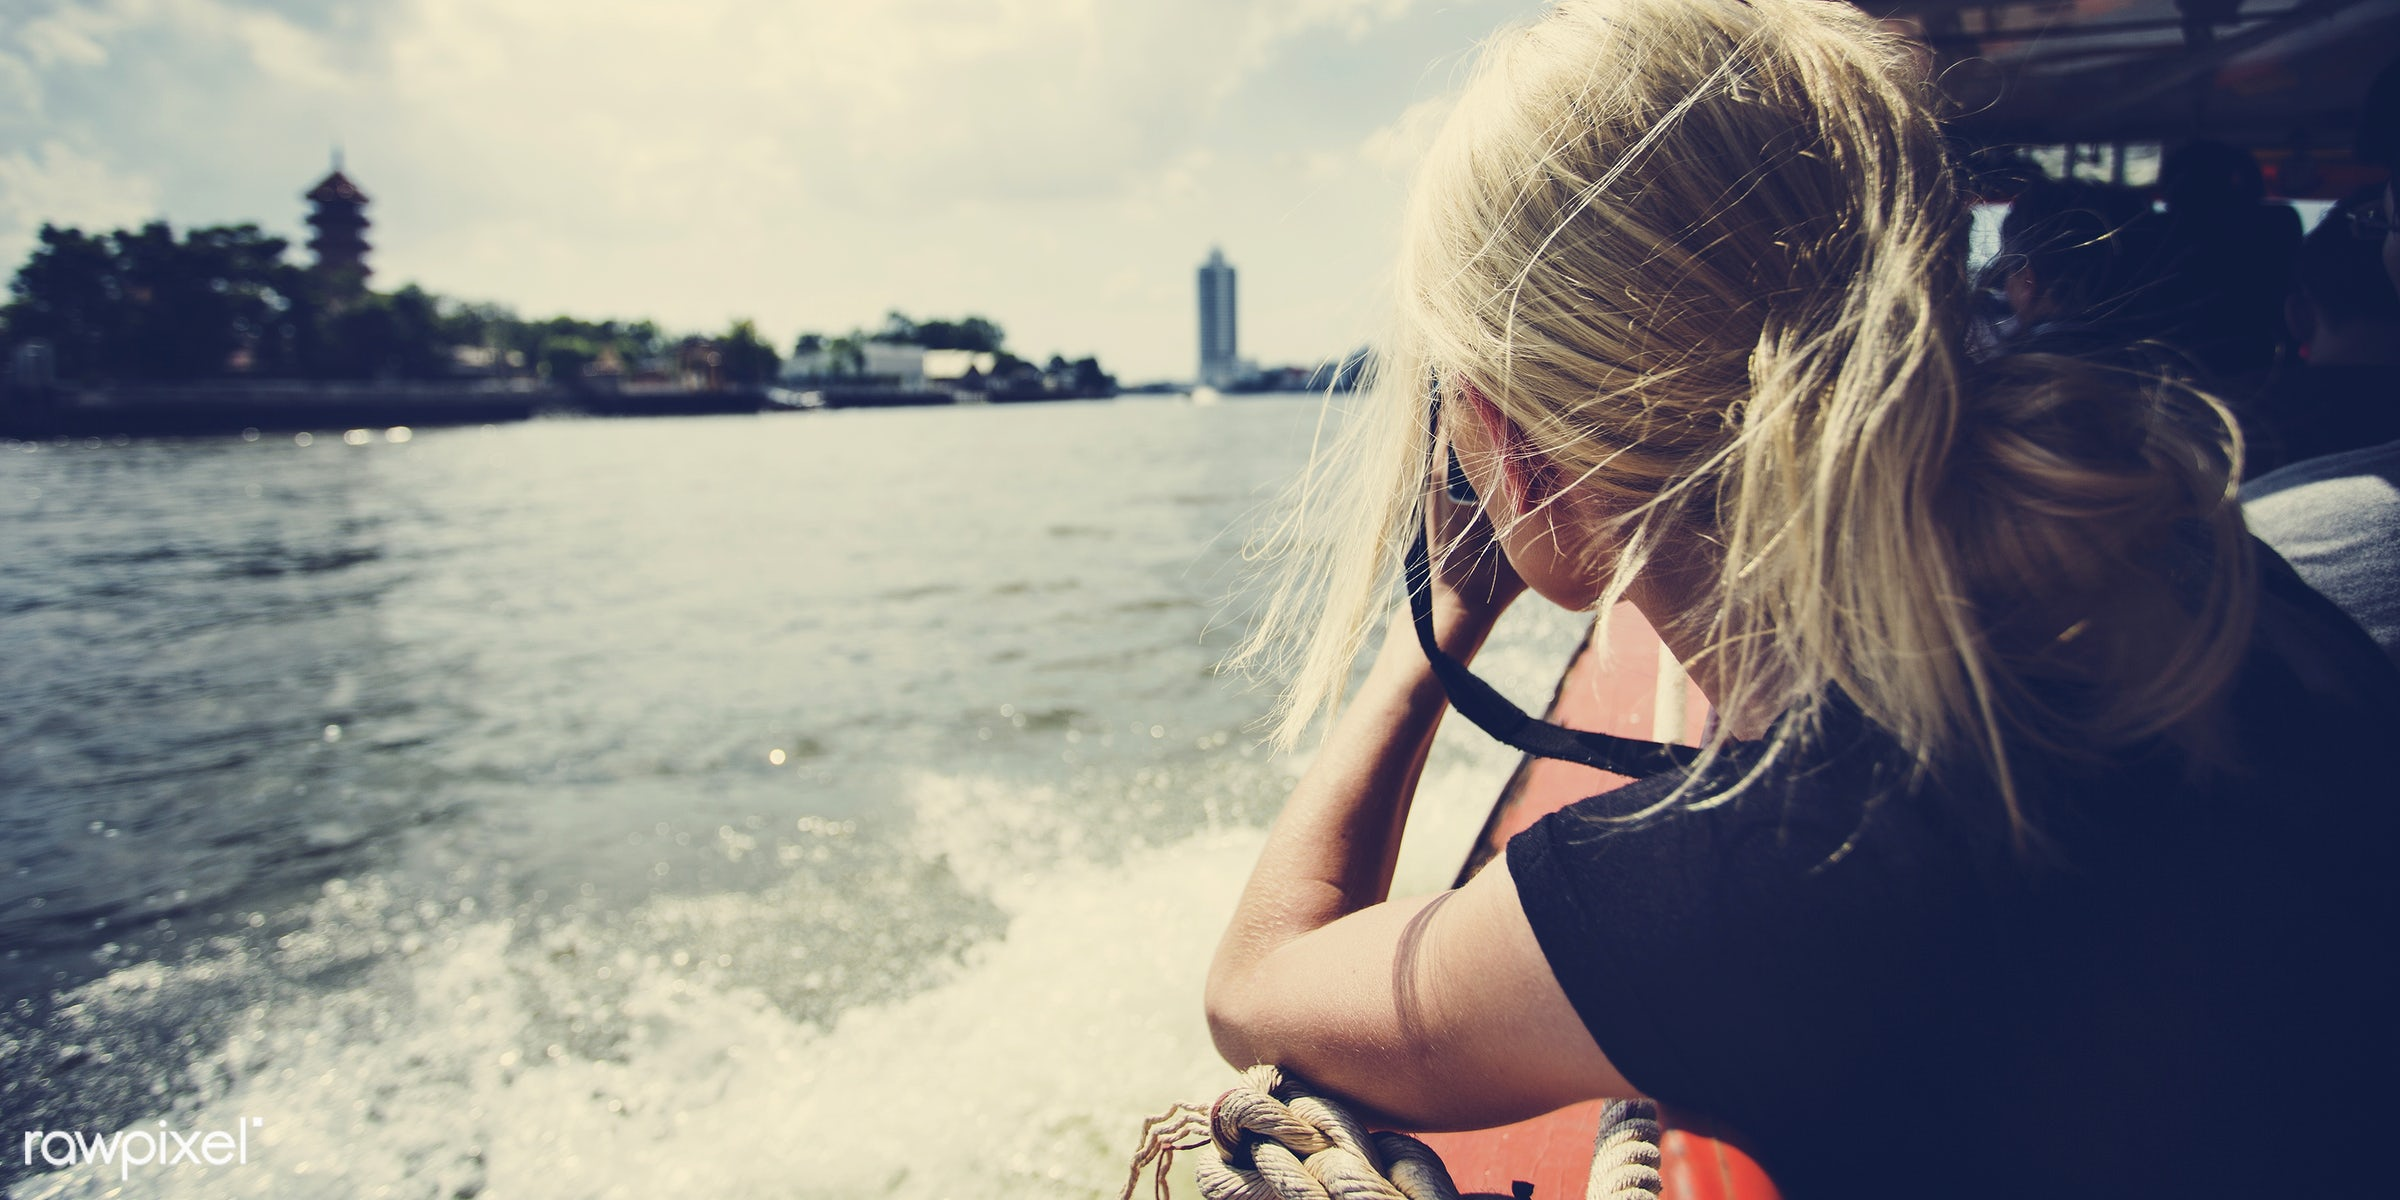 alone, back, blonde, boat, camera, caucasian, female, messy hair, one, outdoors, person, portrait, river, river boat, shoot...